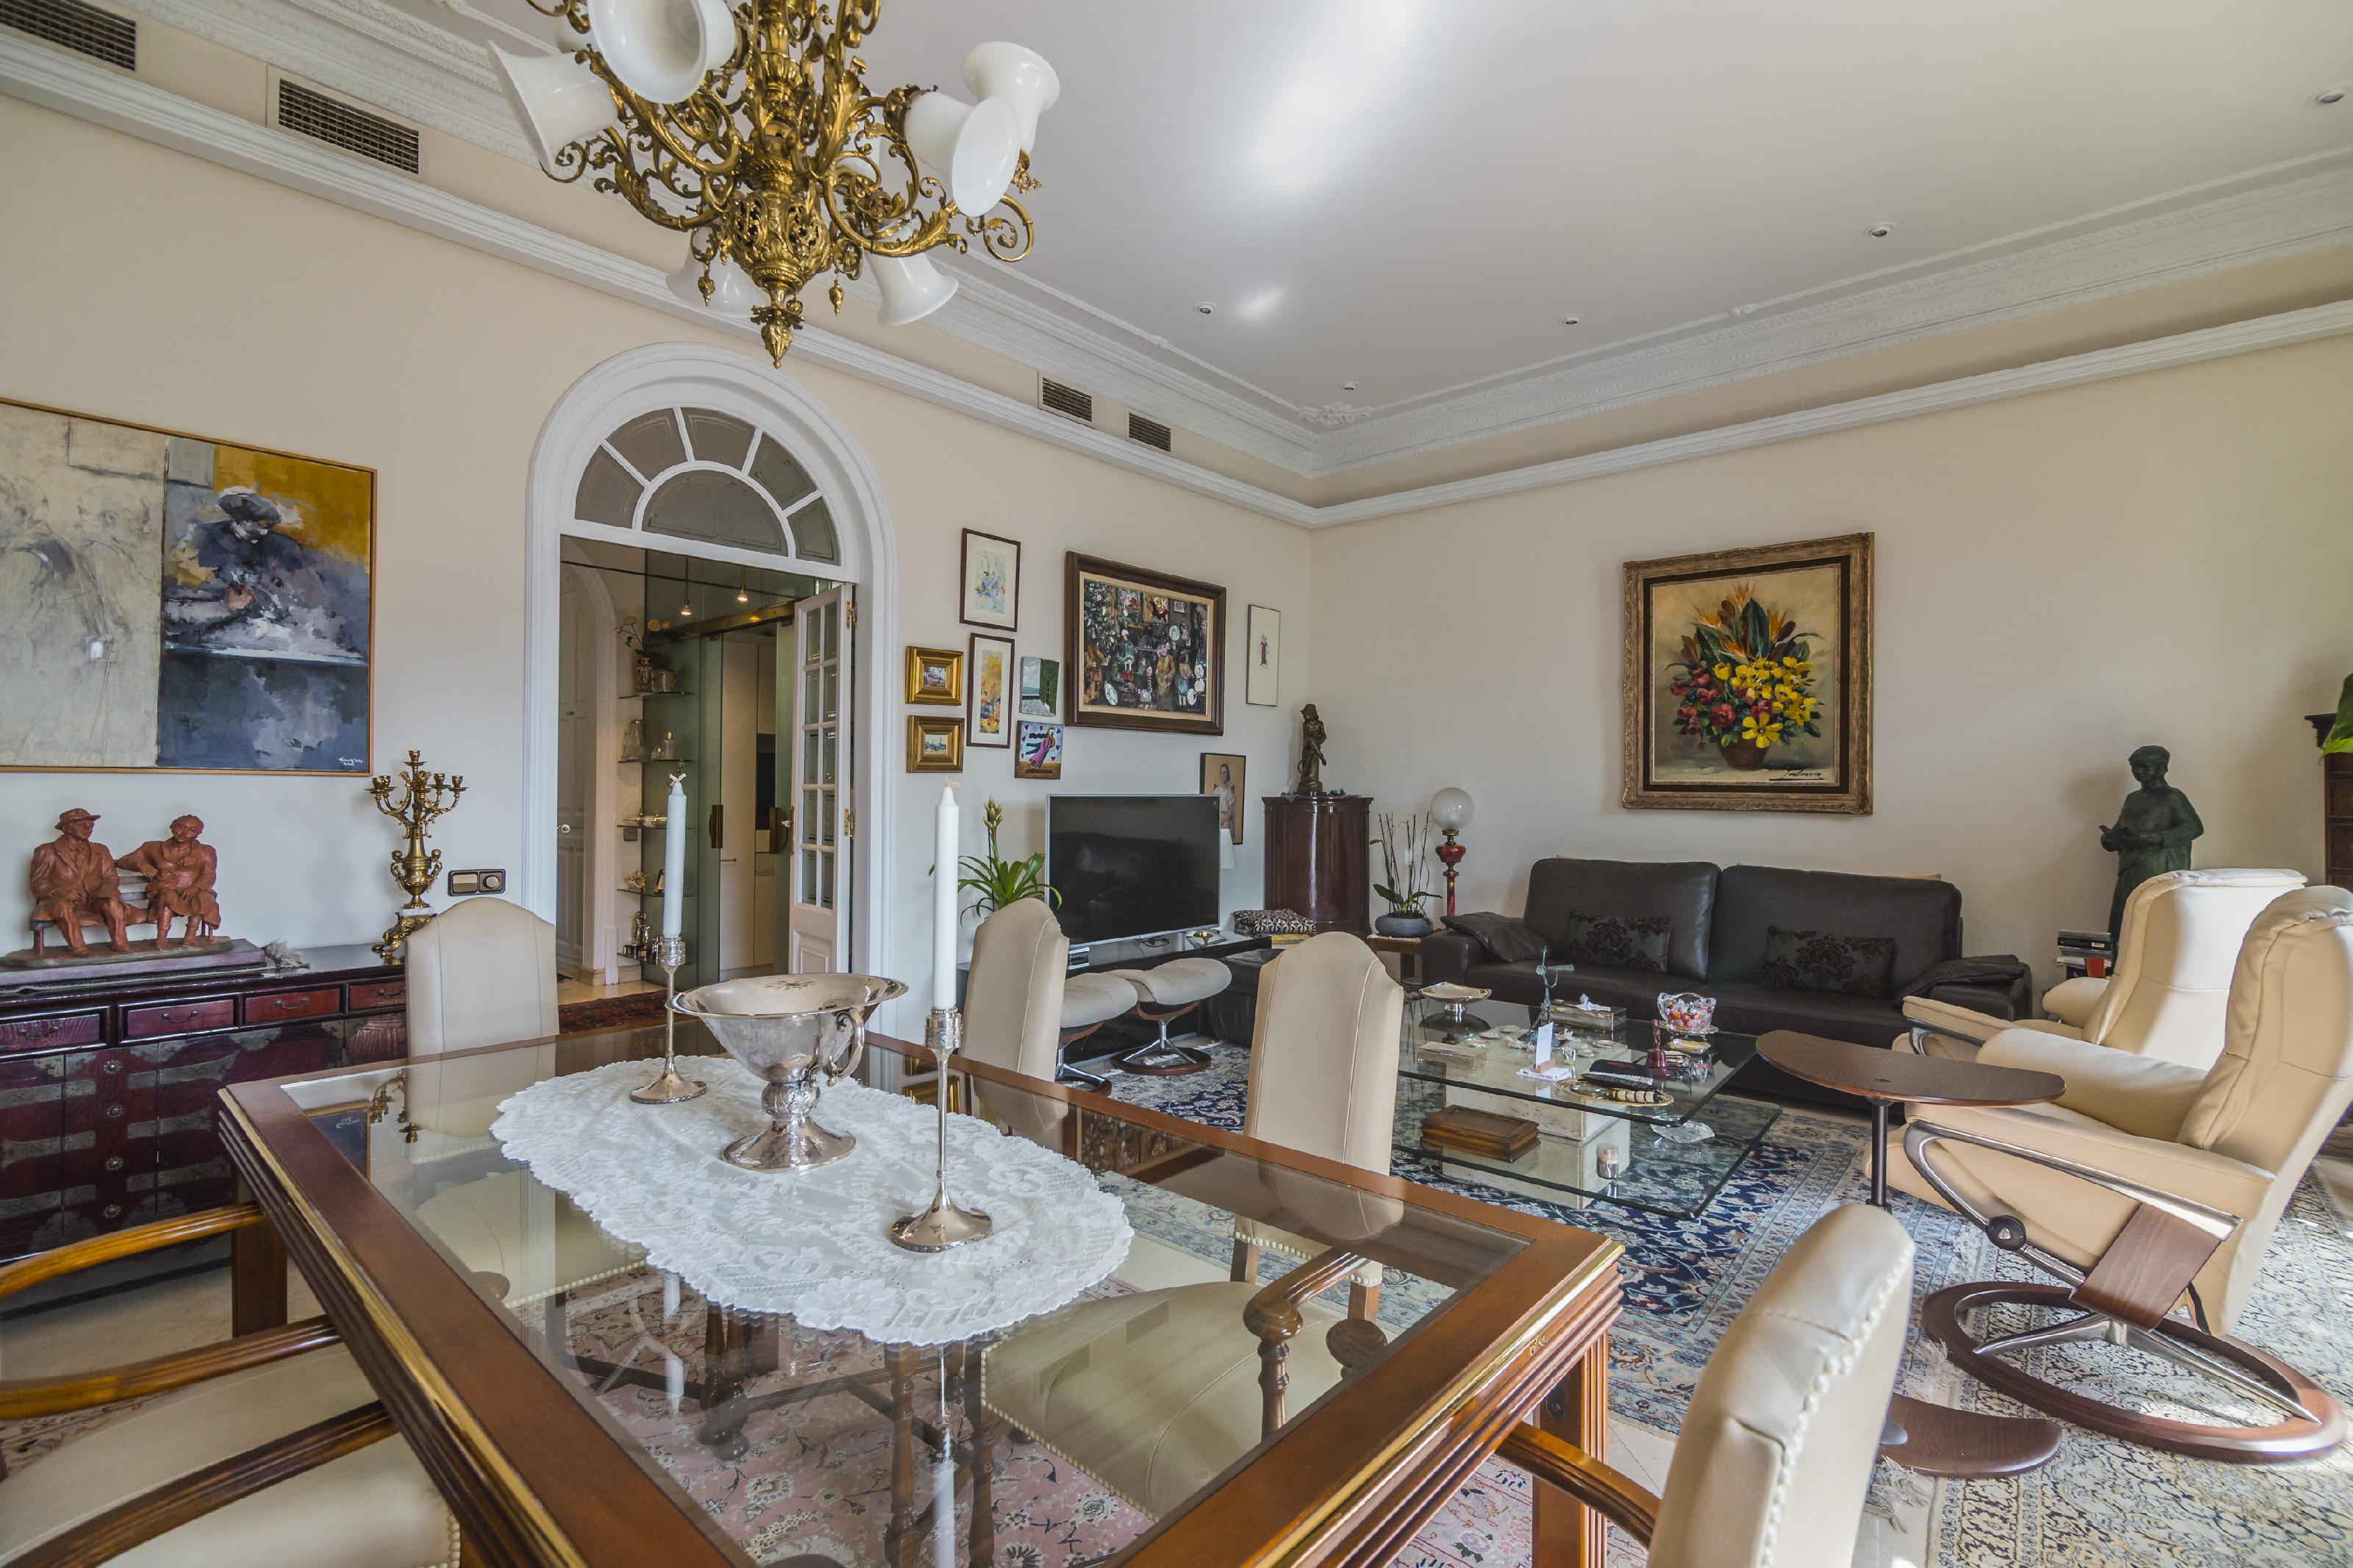 87800 Apartment for sale in Eixample, Dreta Eixample 4